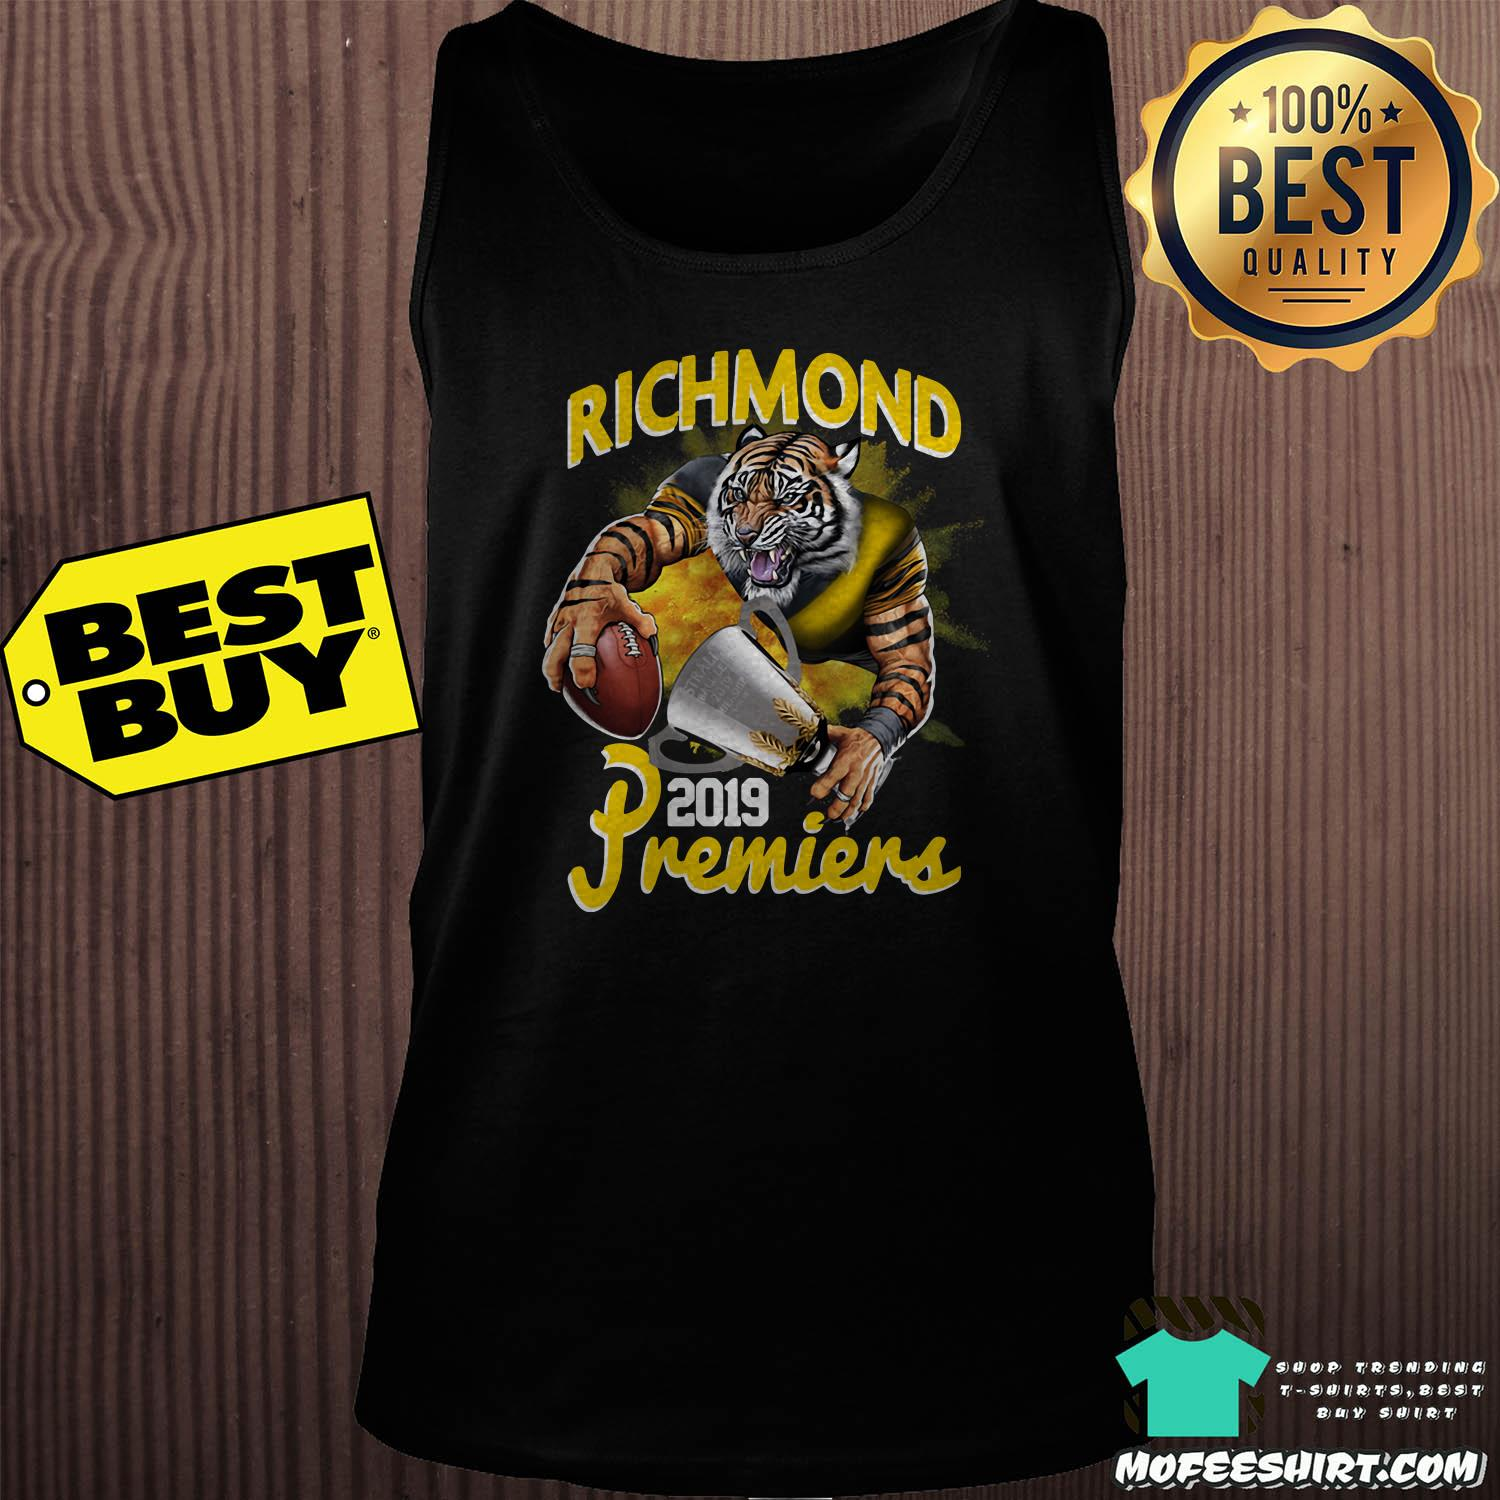 afl richmond tigers premiers 2019 tank top - AFL Richmond Tigers Premiers 2019 shirt